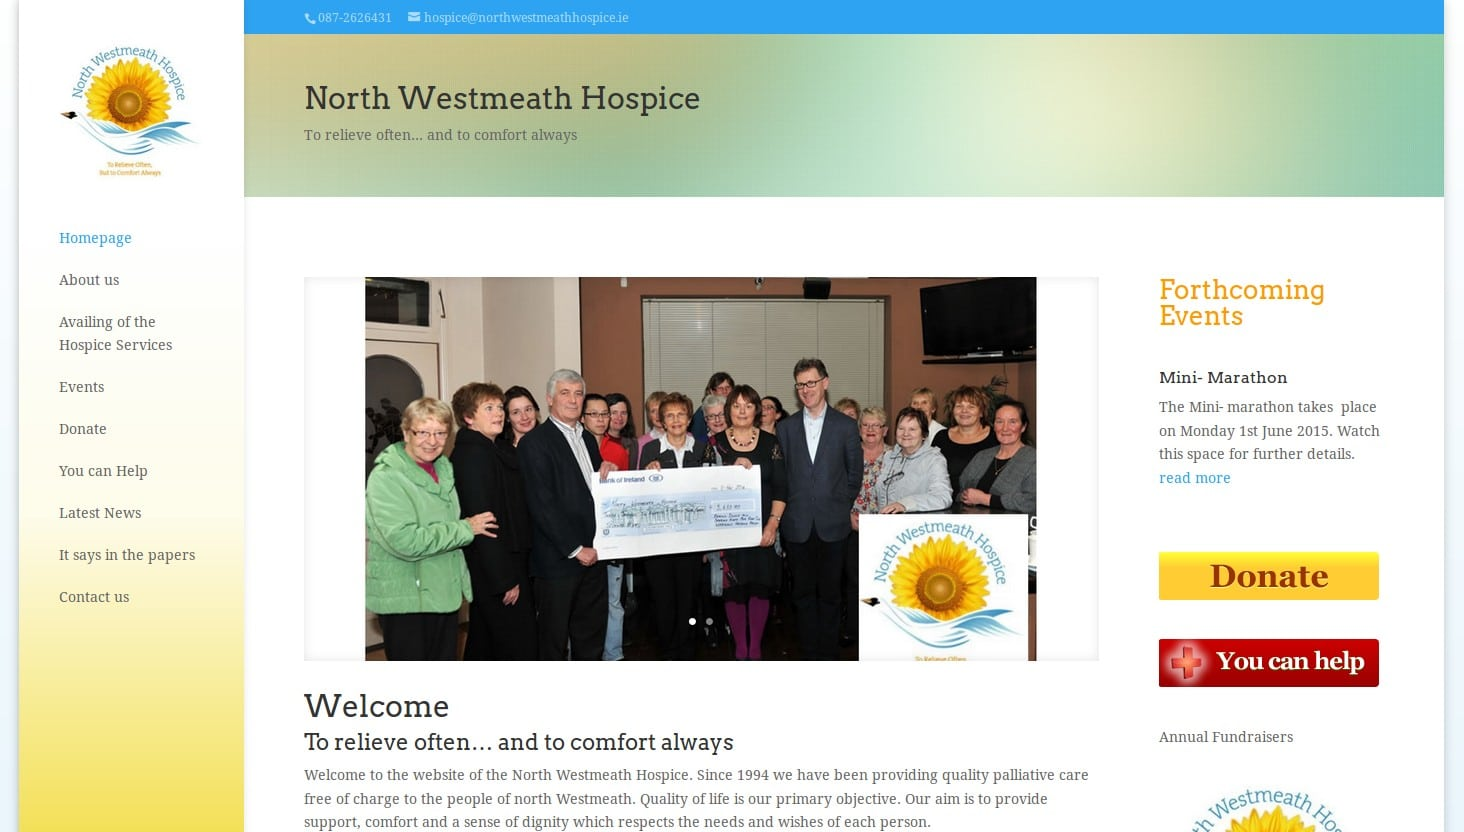 north westmeath hospice website